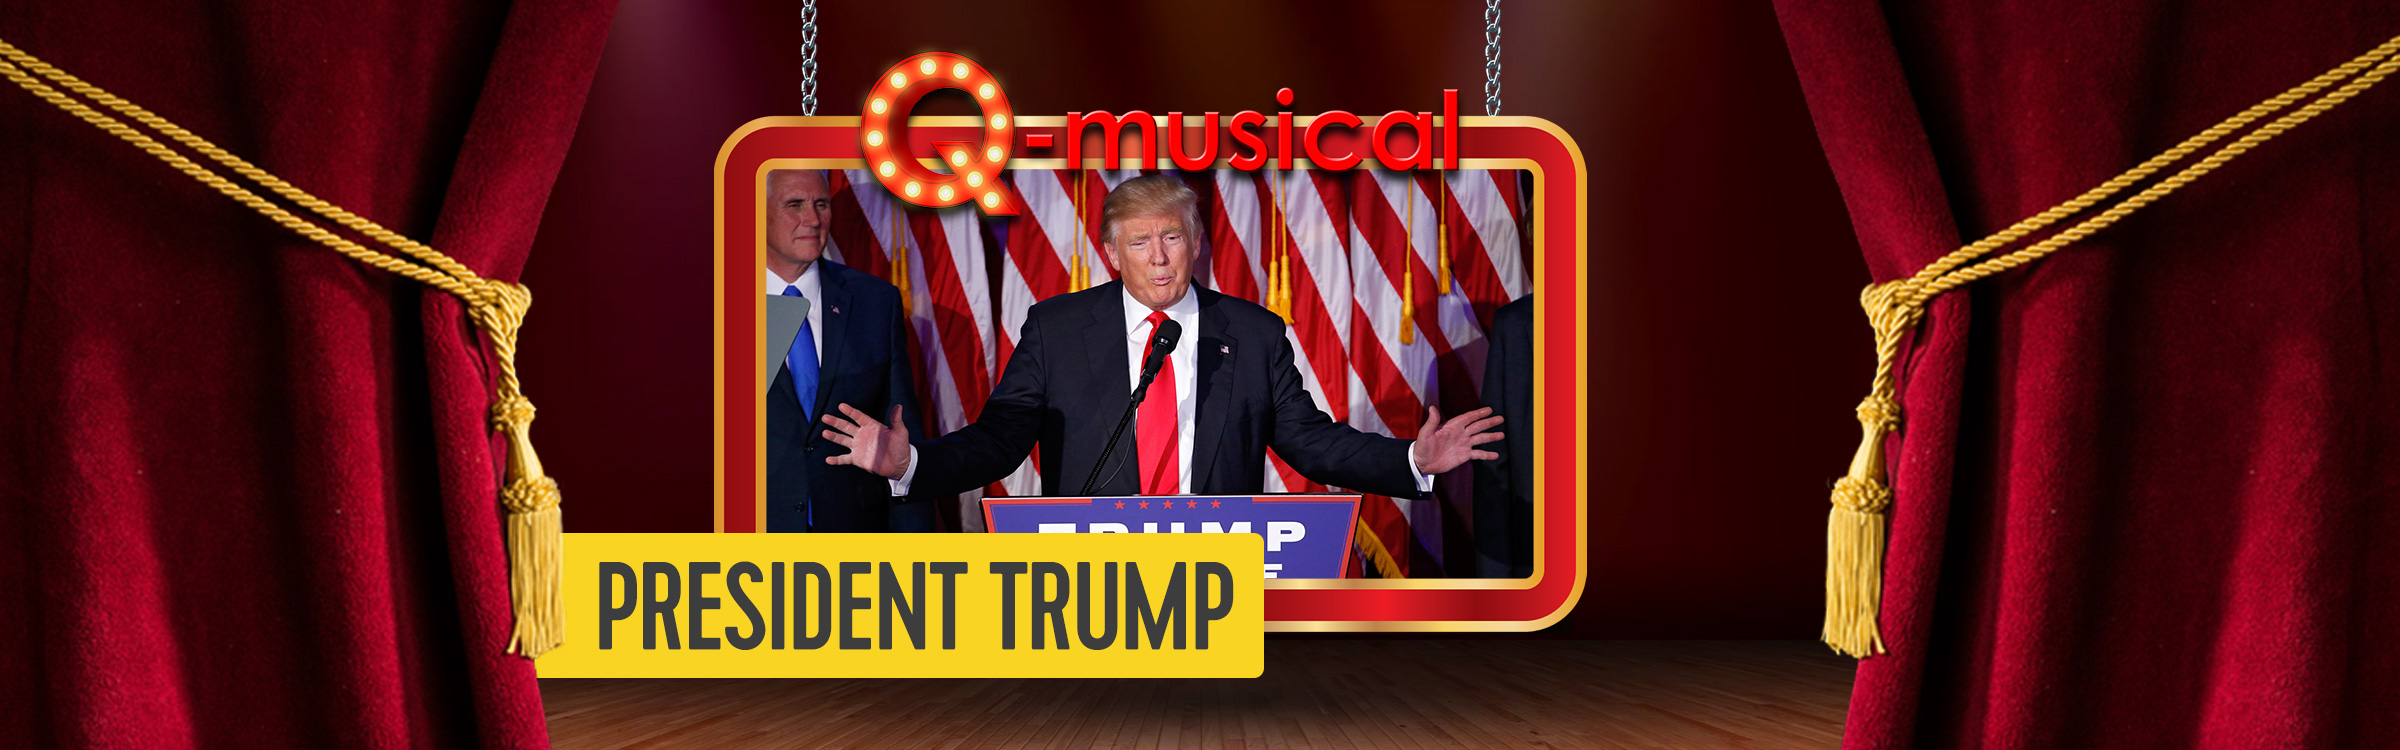 Q musical site thumb template